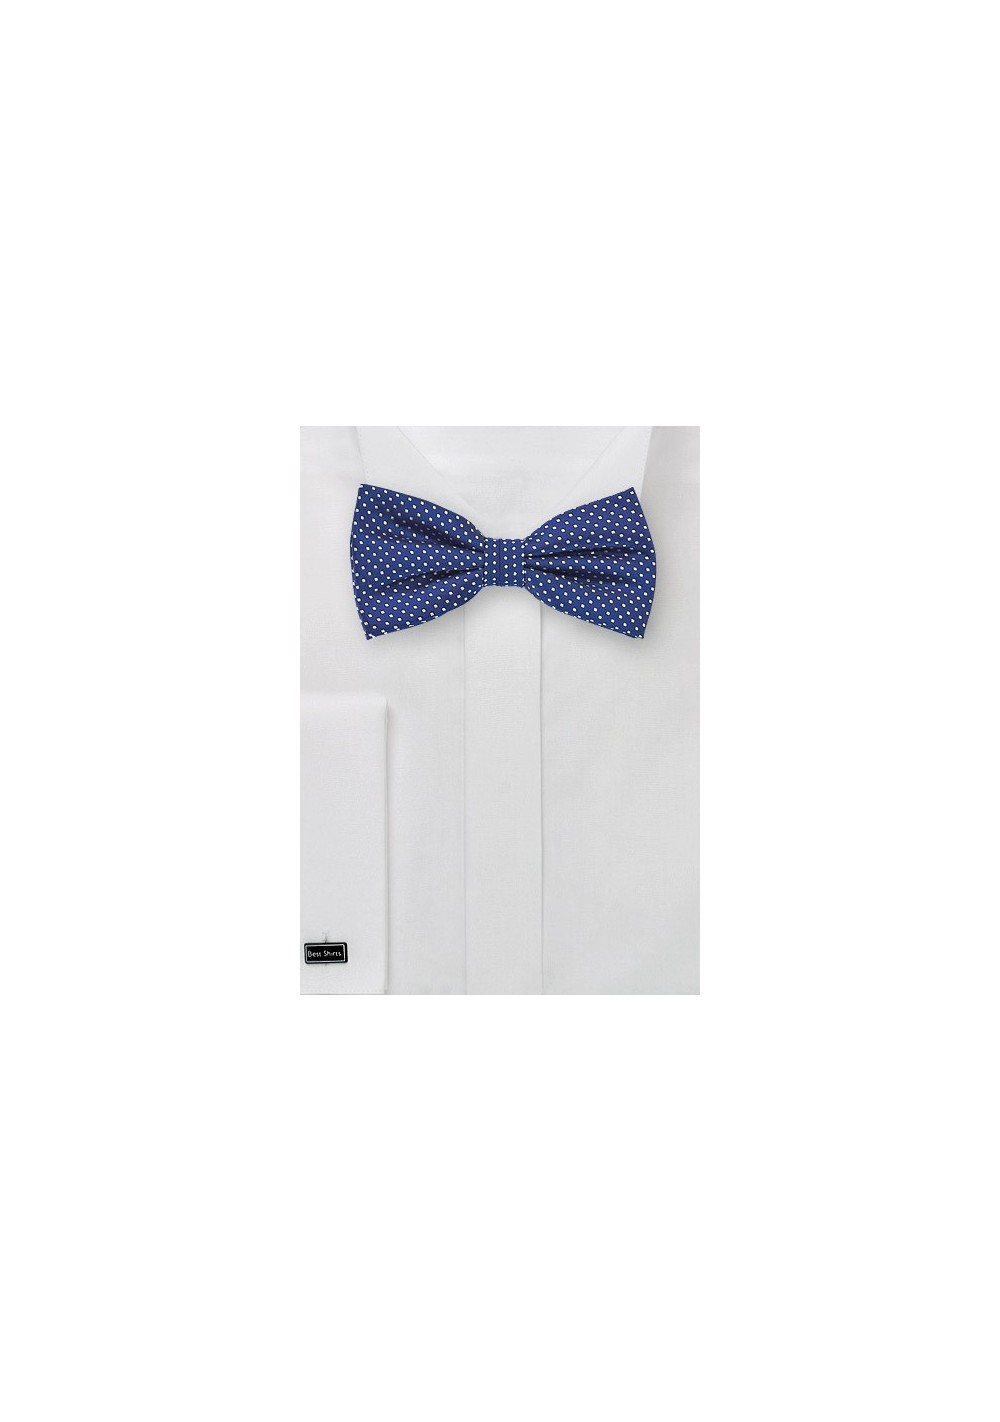 Royal Blue Bow Tie with Small Dots